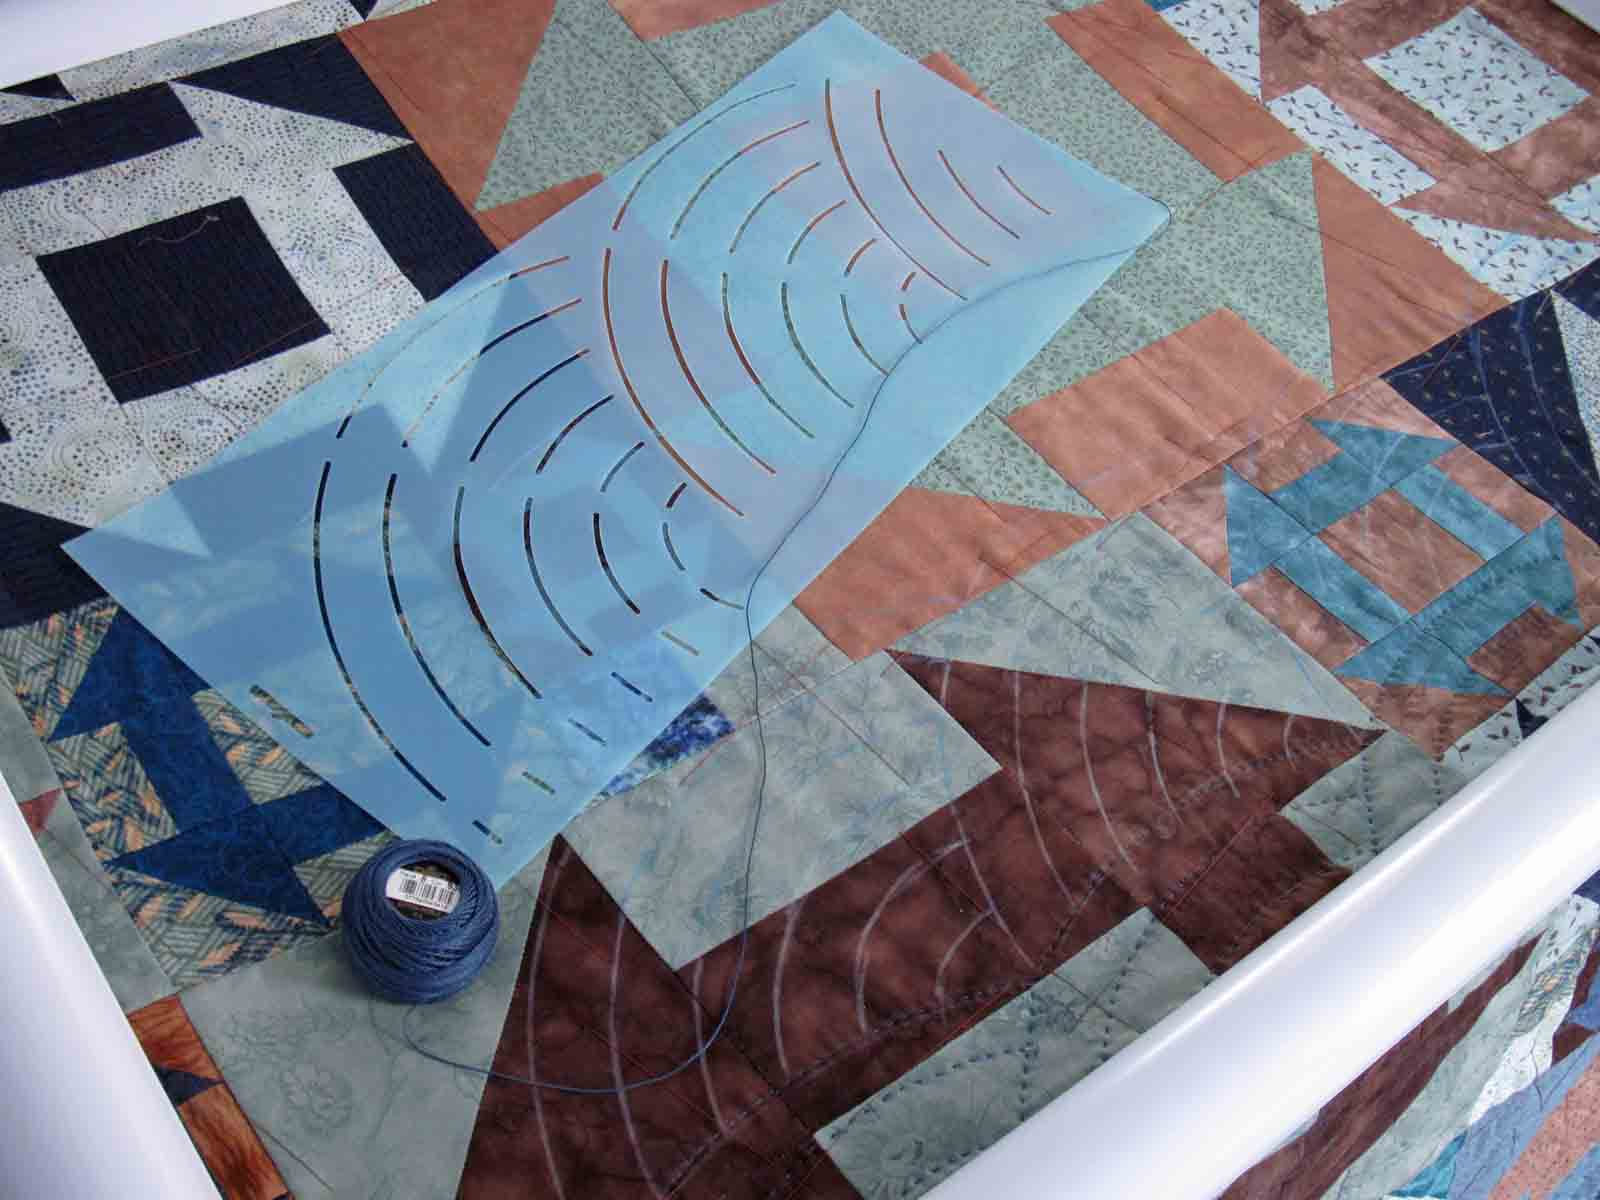 Quilting Stitch Patterns By Hand Cafca Info For